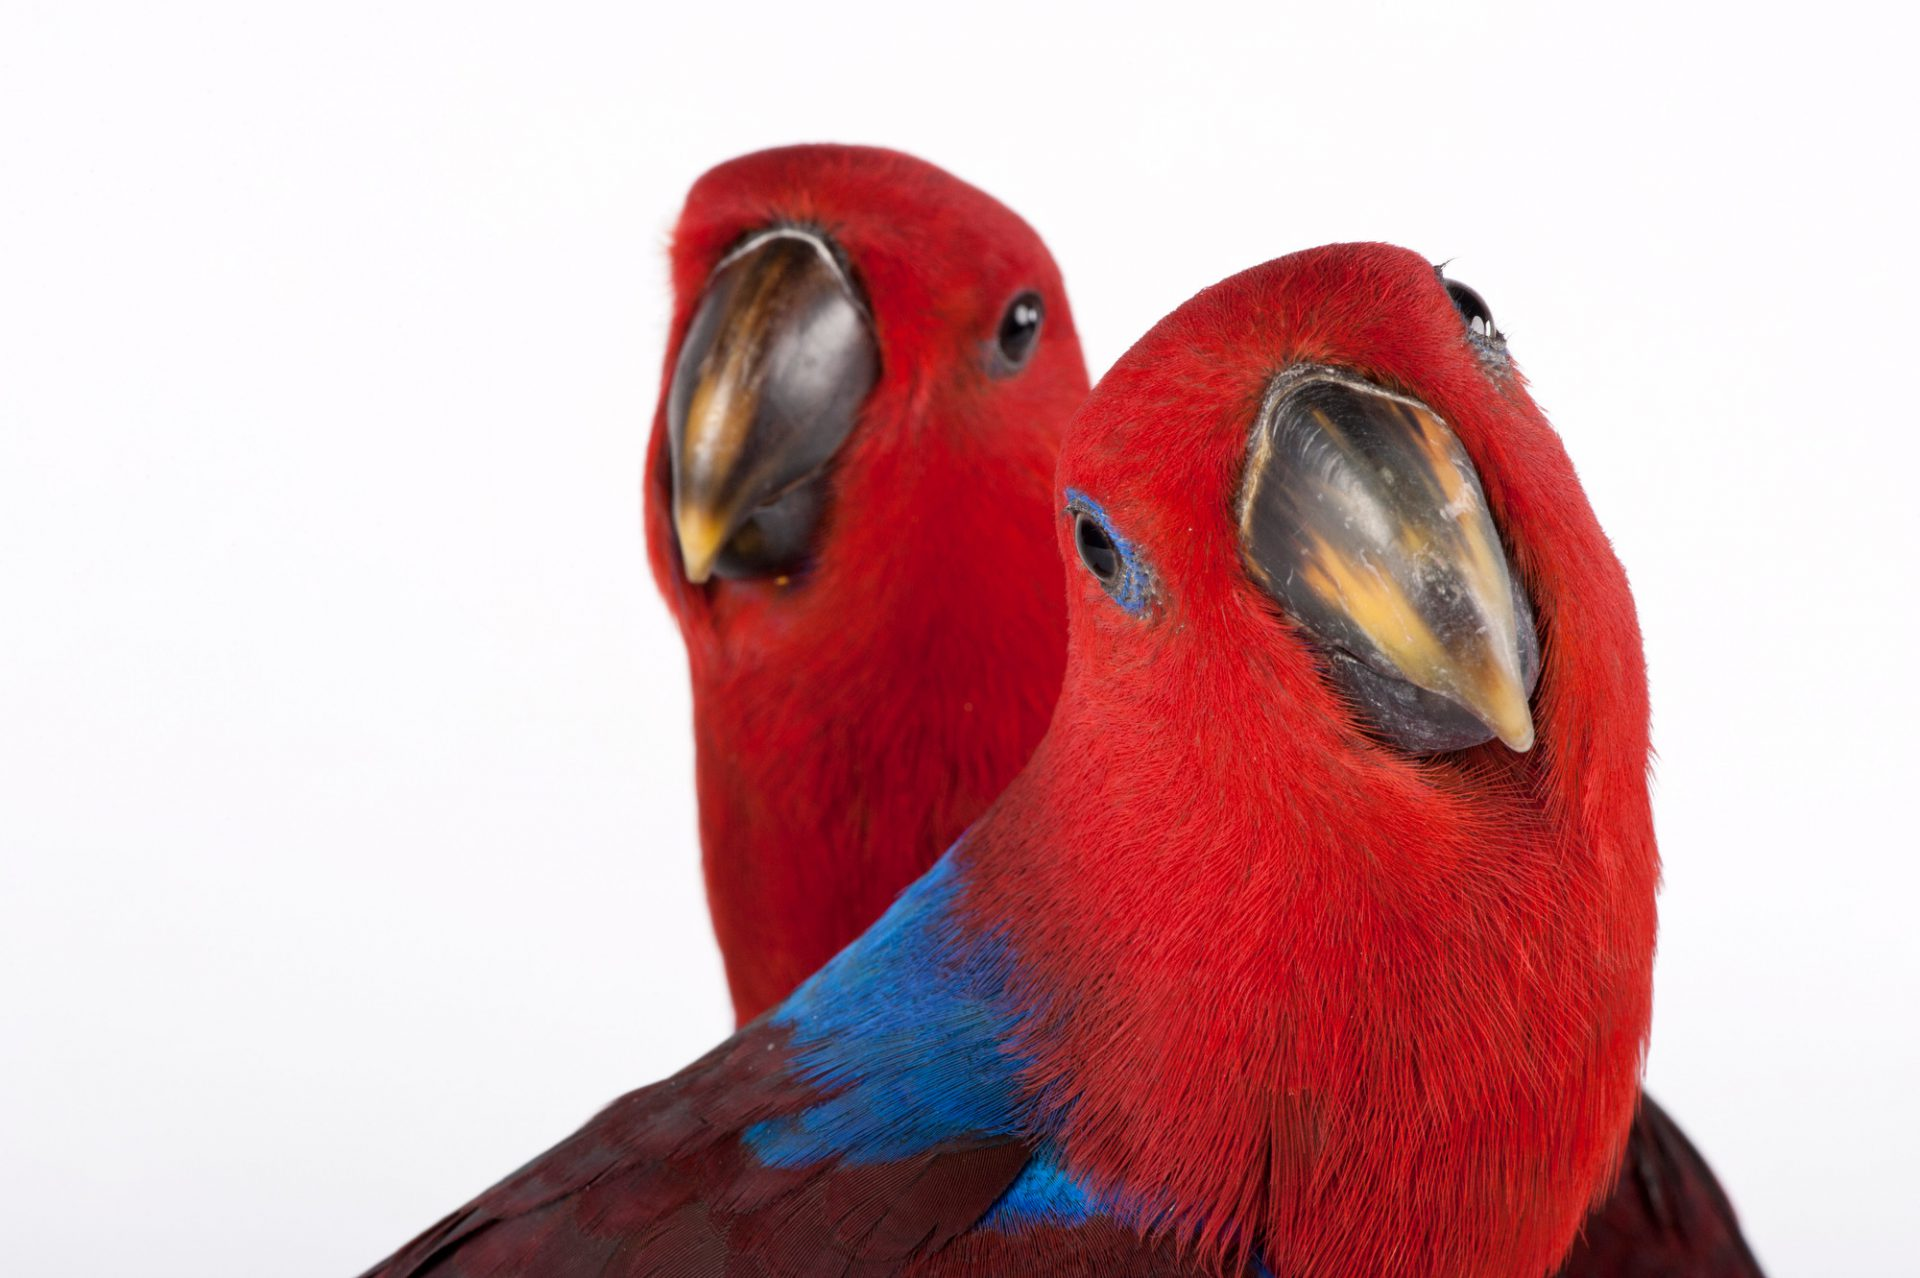 Picture of red-sided eclectus parrots or New Guinea eclectus (Eclectus roratus polychloros) at Parrots in Paradise, a bird attraction in Glass House Mountains, Queensland.